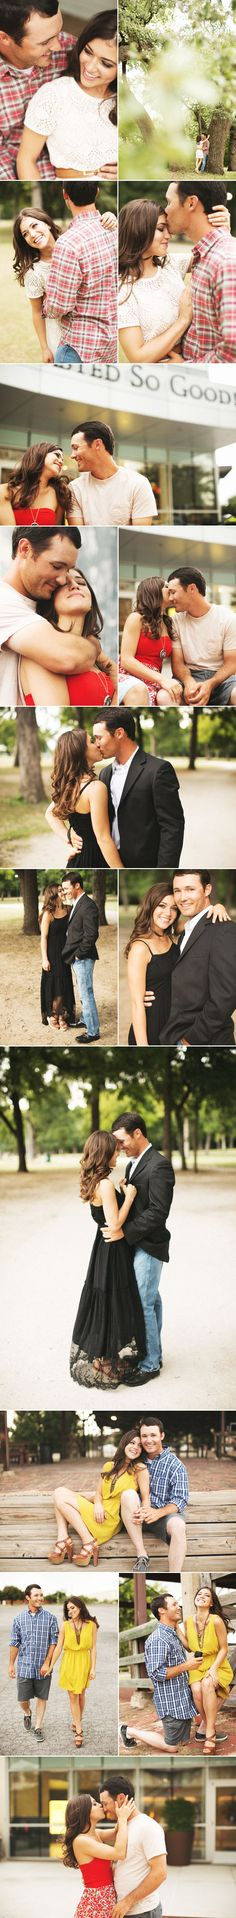 engagement photo ideas... lots!